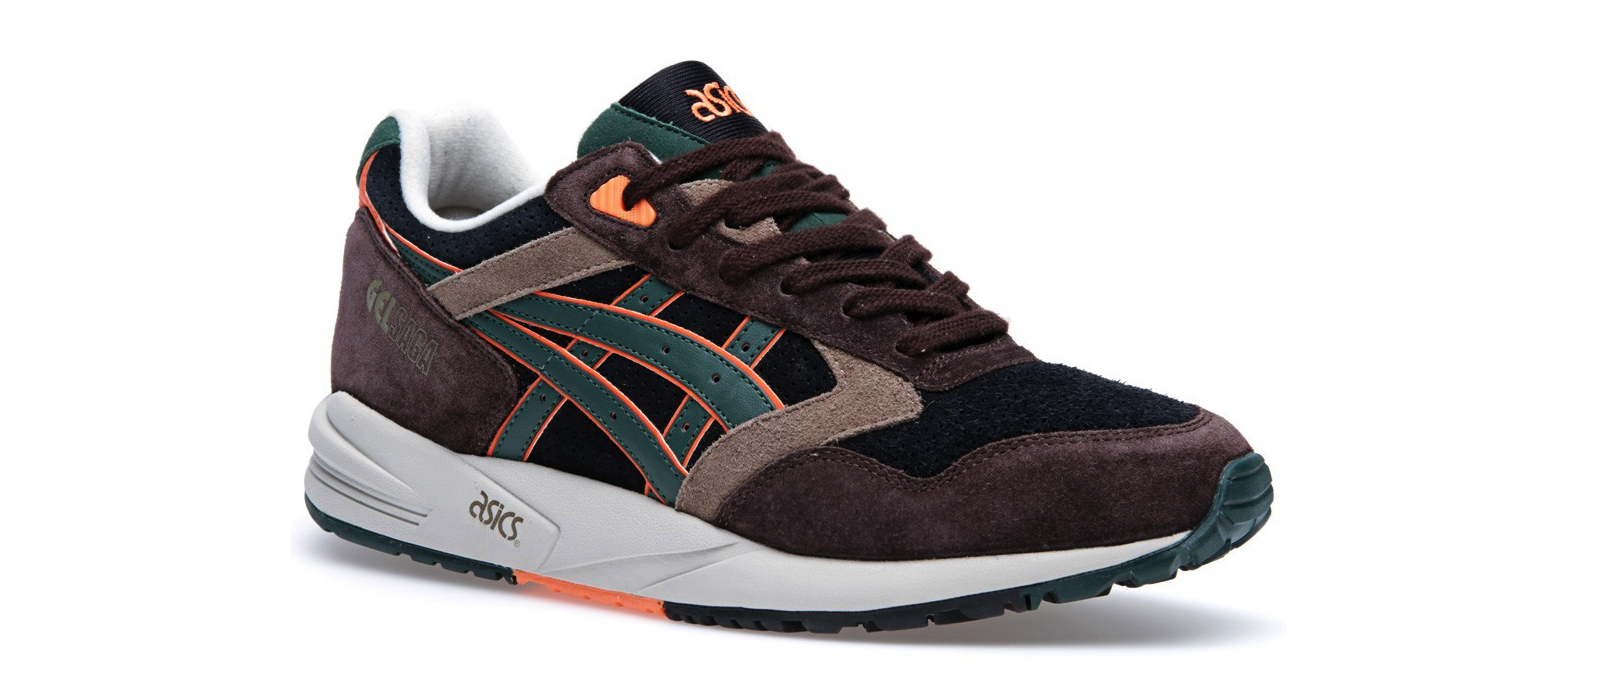 Asics Gel Saga Black, Brown and Dark Green